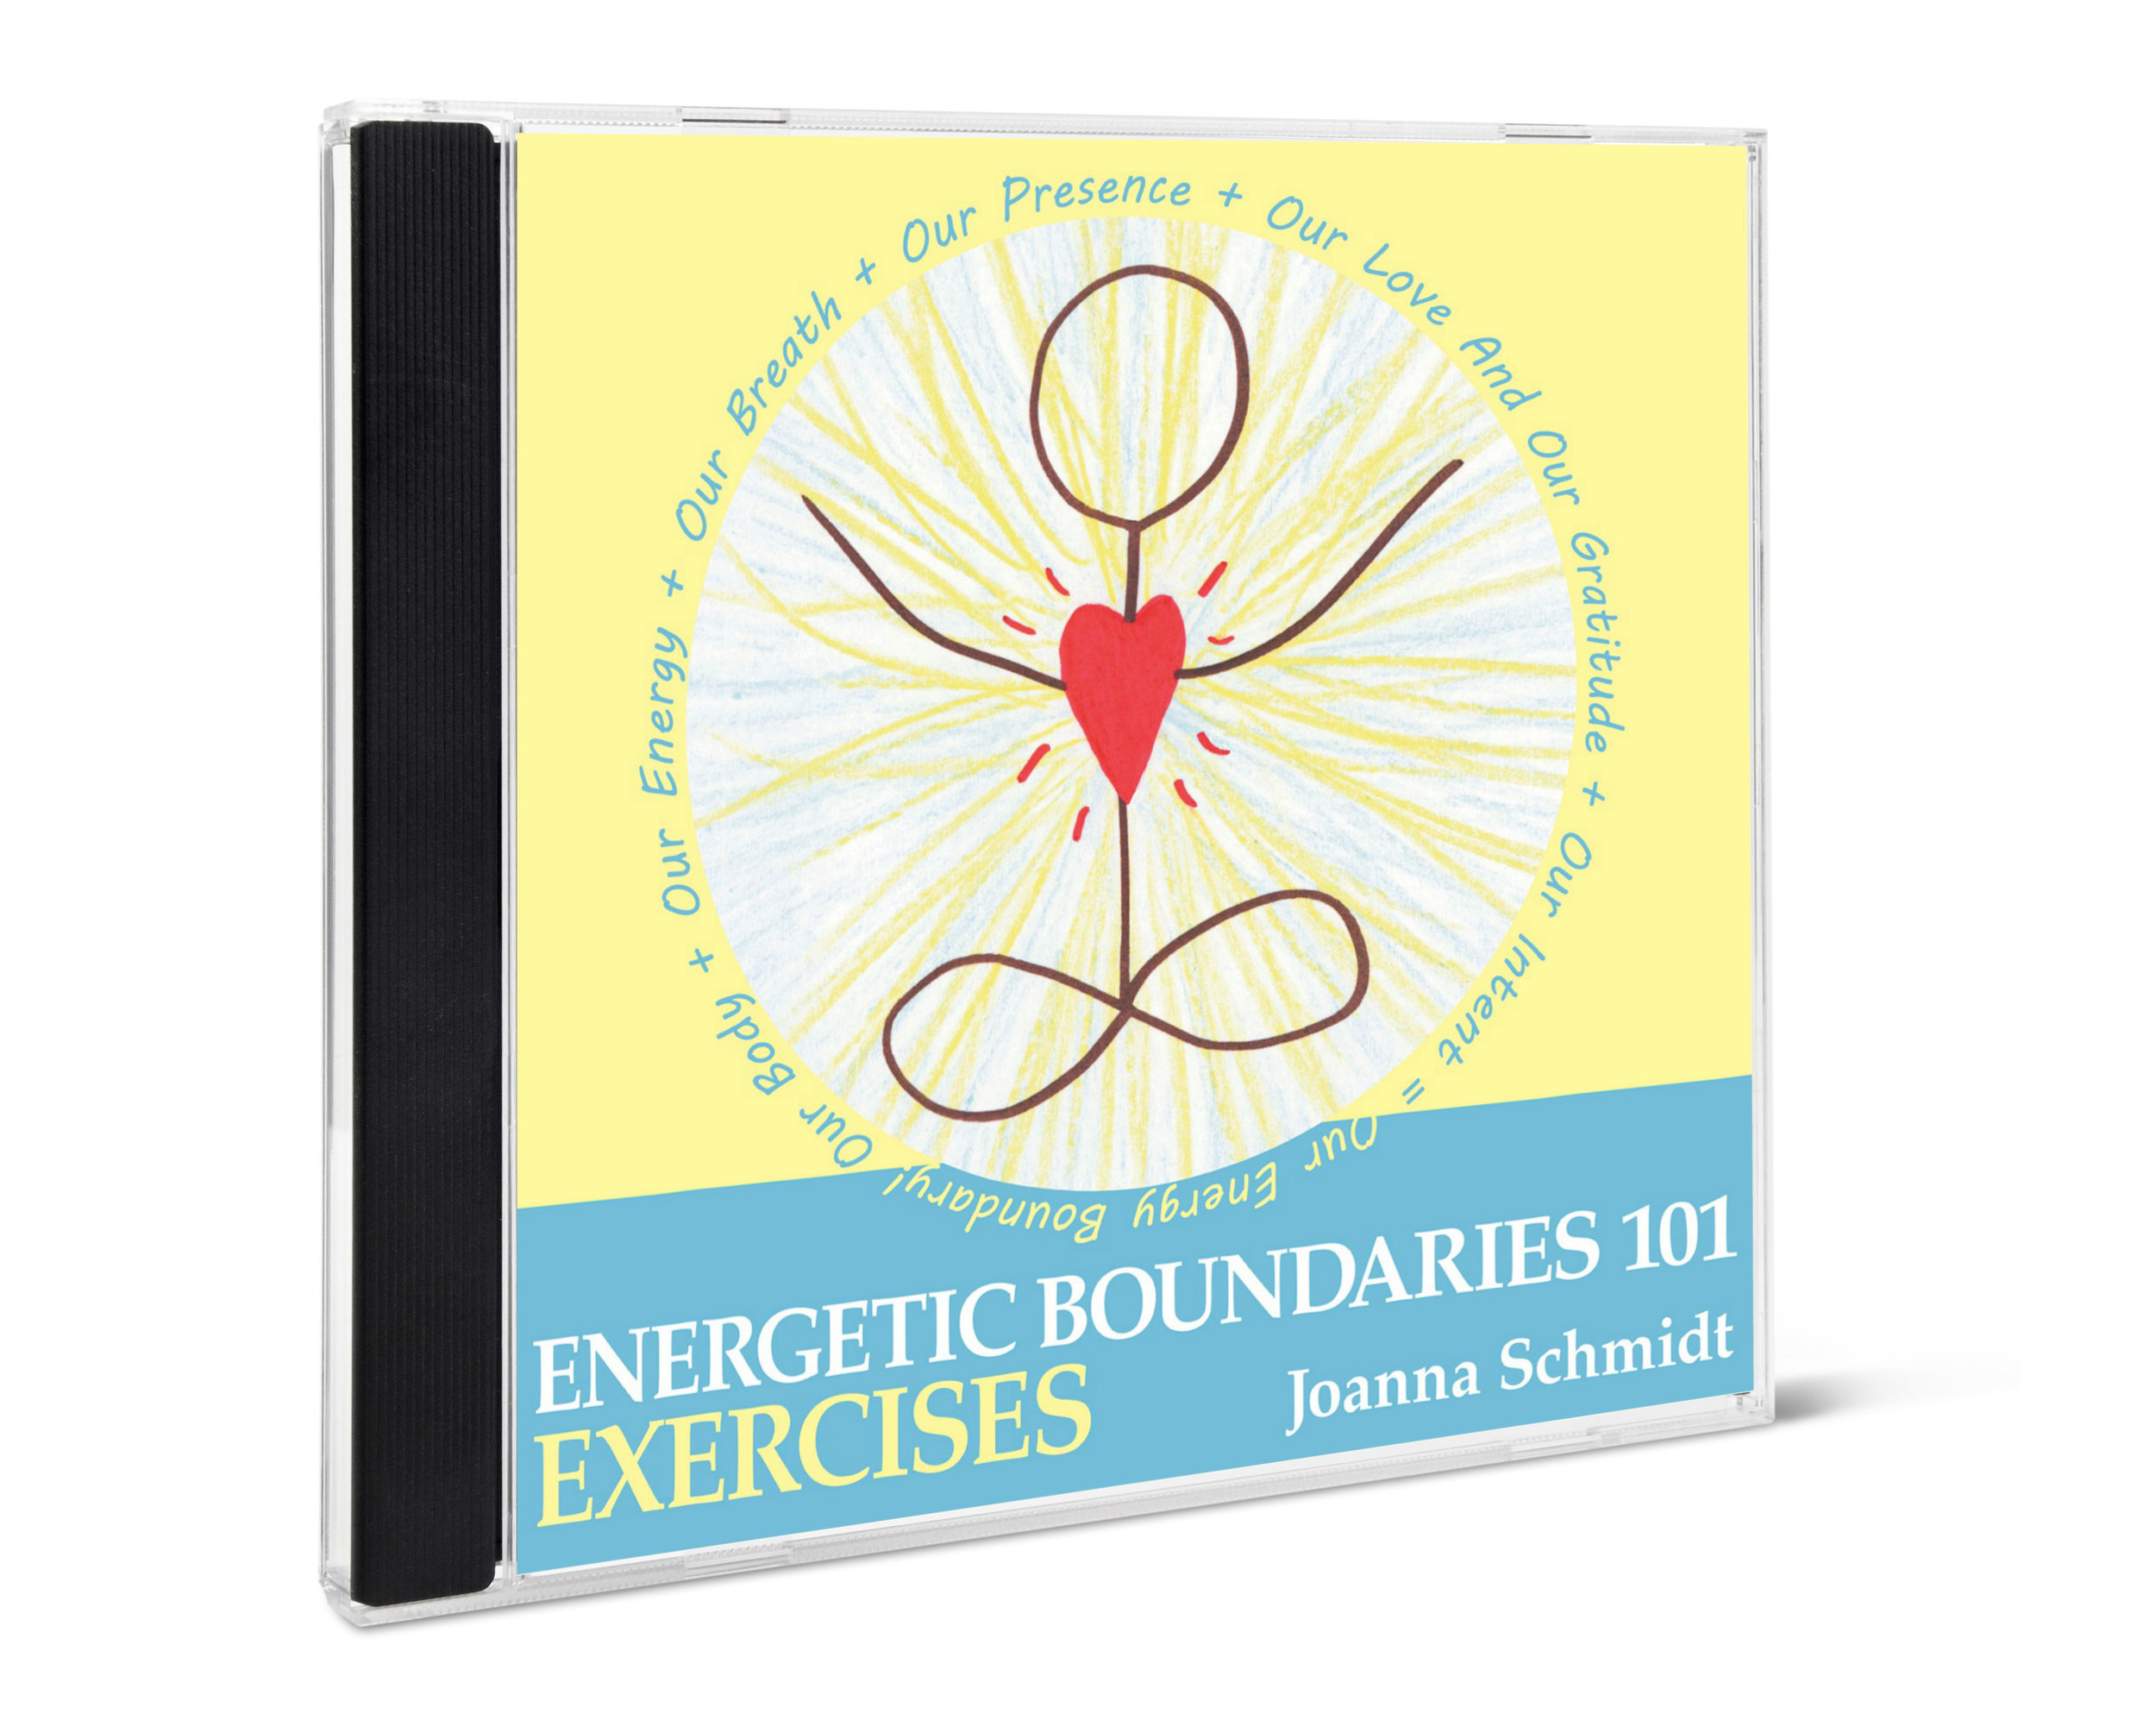 energetic boundary tune up meditations